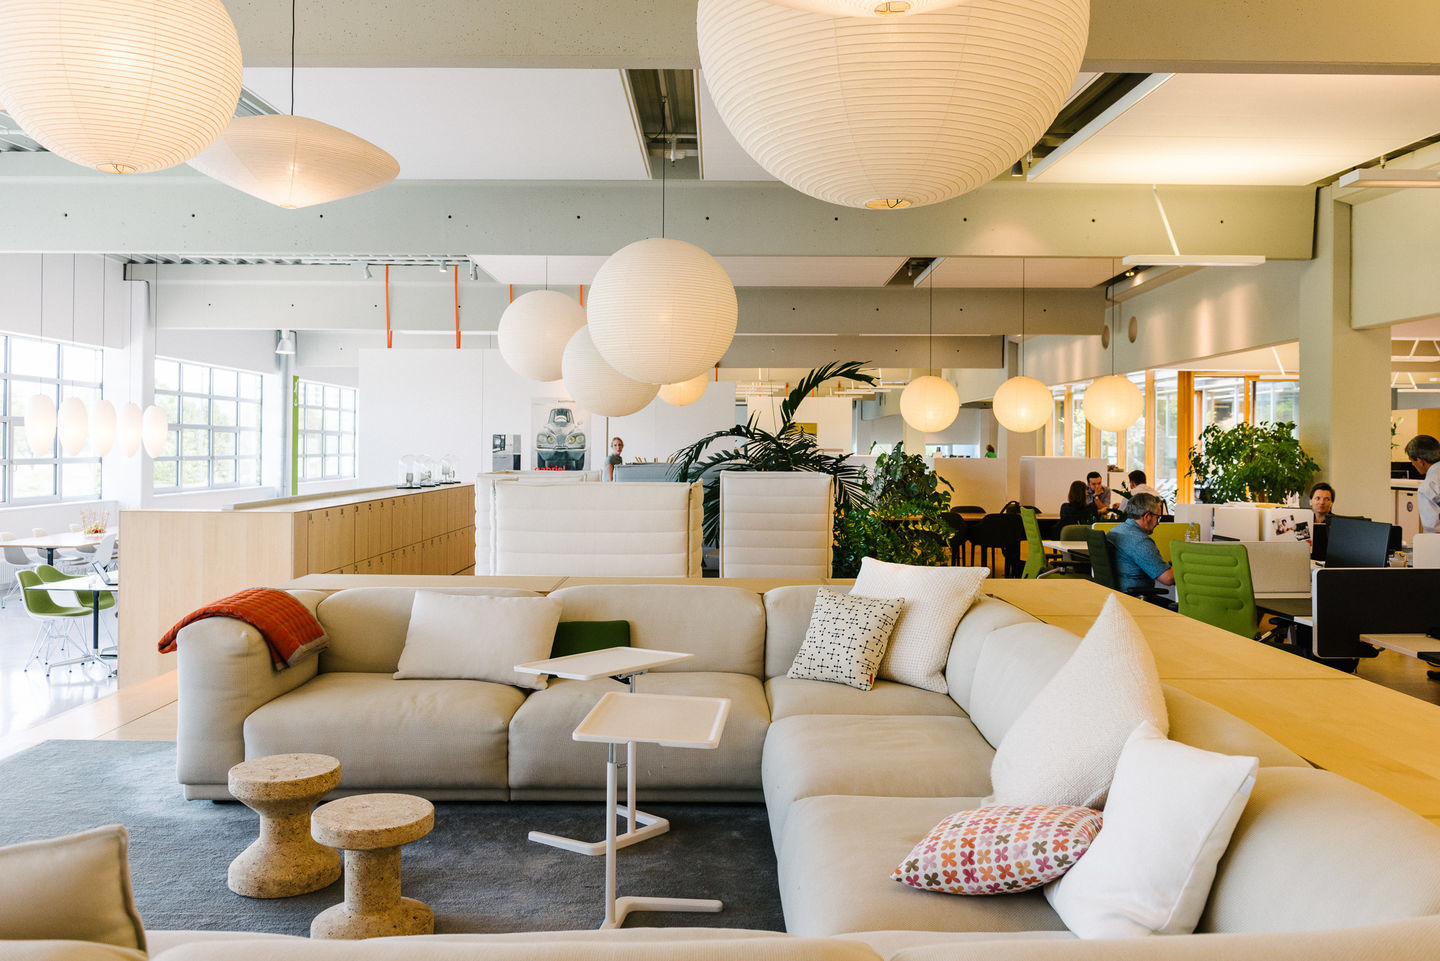 interior the in you of peach freunde eco architect collaborate von work and interviews shared favor design culture shifting with choose me a sevil where freunden responsibility